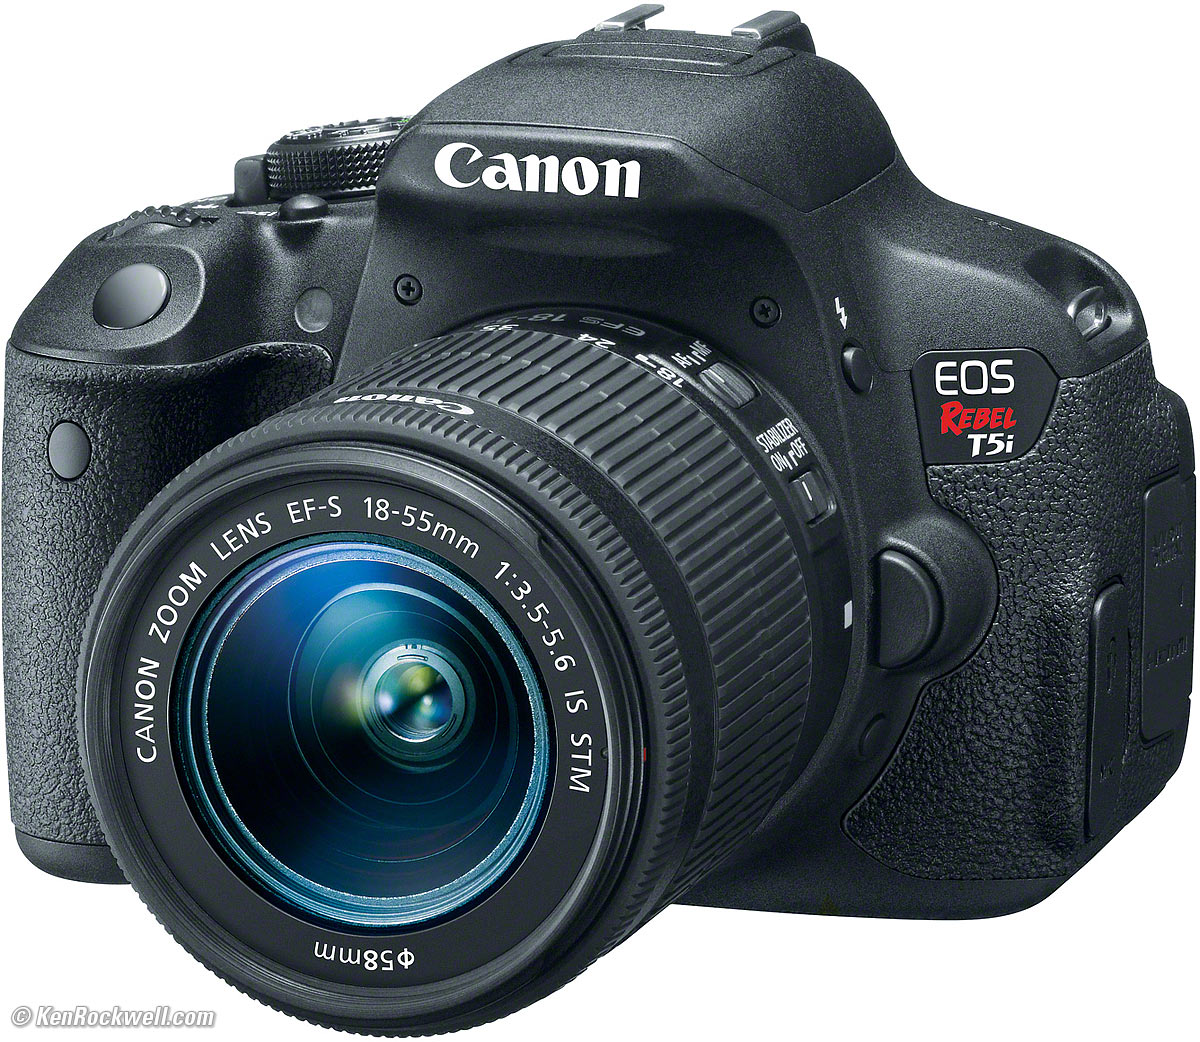 Canon Rebel DSLR camera